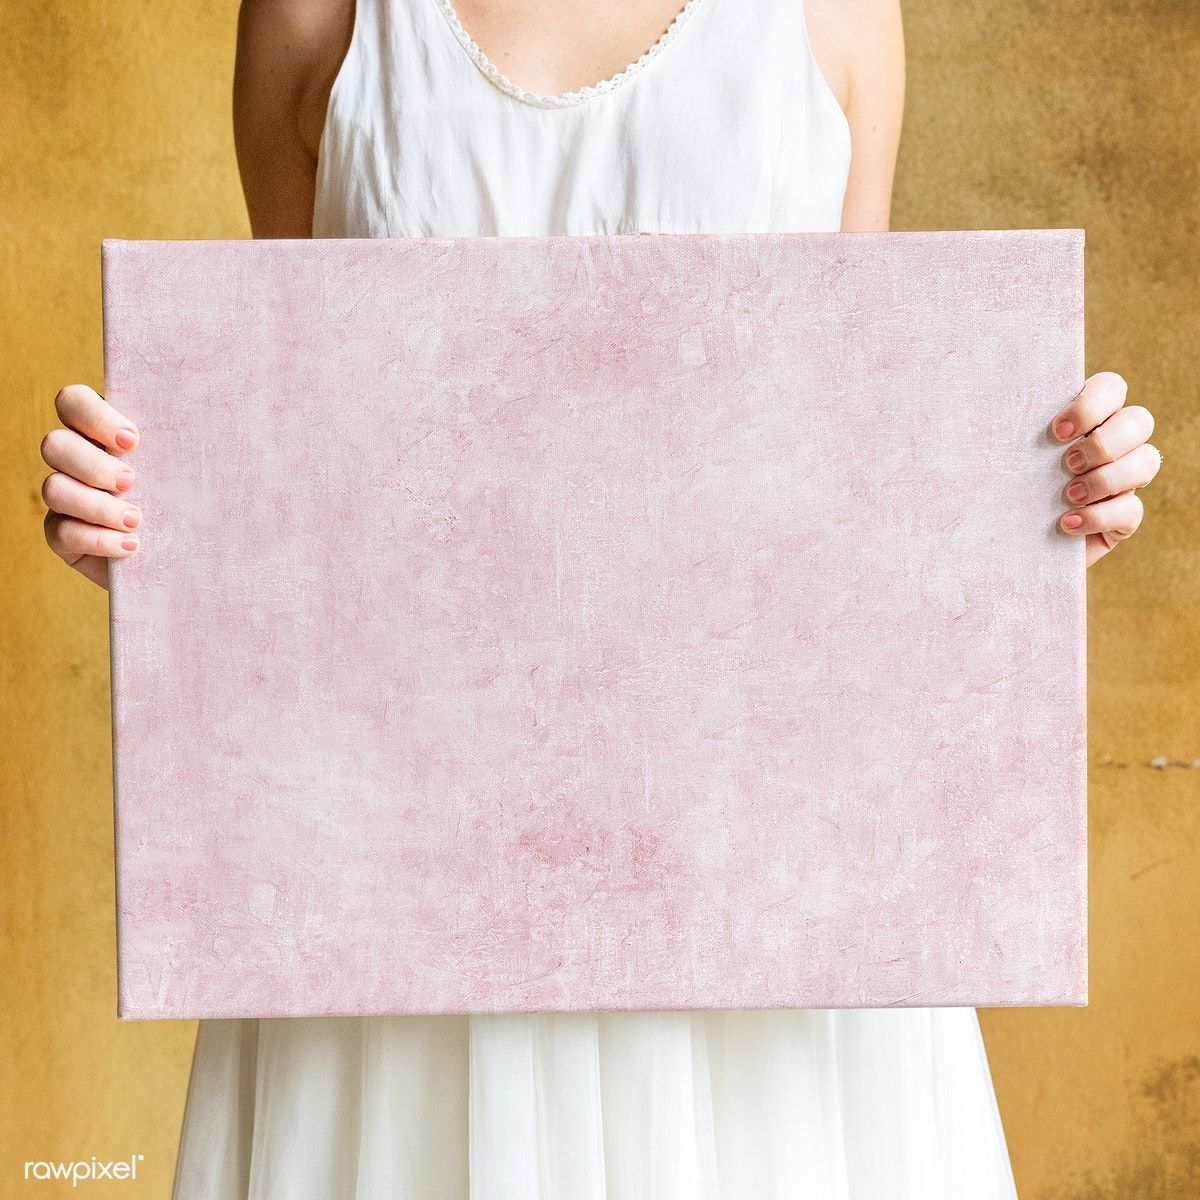 Download Premium Psd Of Woman Showing A Blank Canvas Mockup 1209286 Frame Mockups Canvas Red Photo Frames